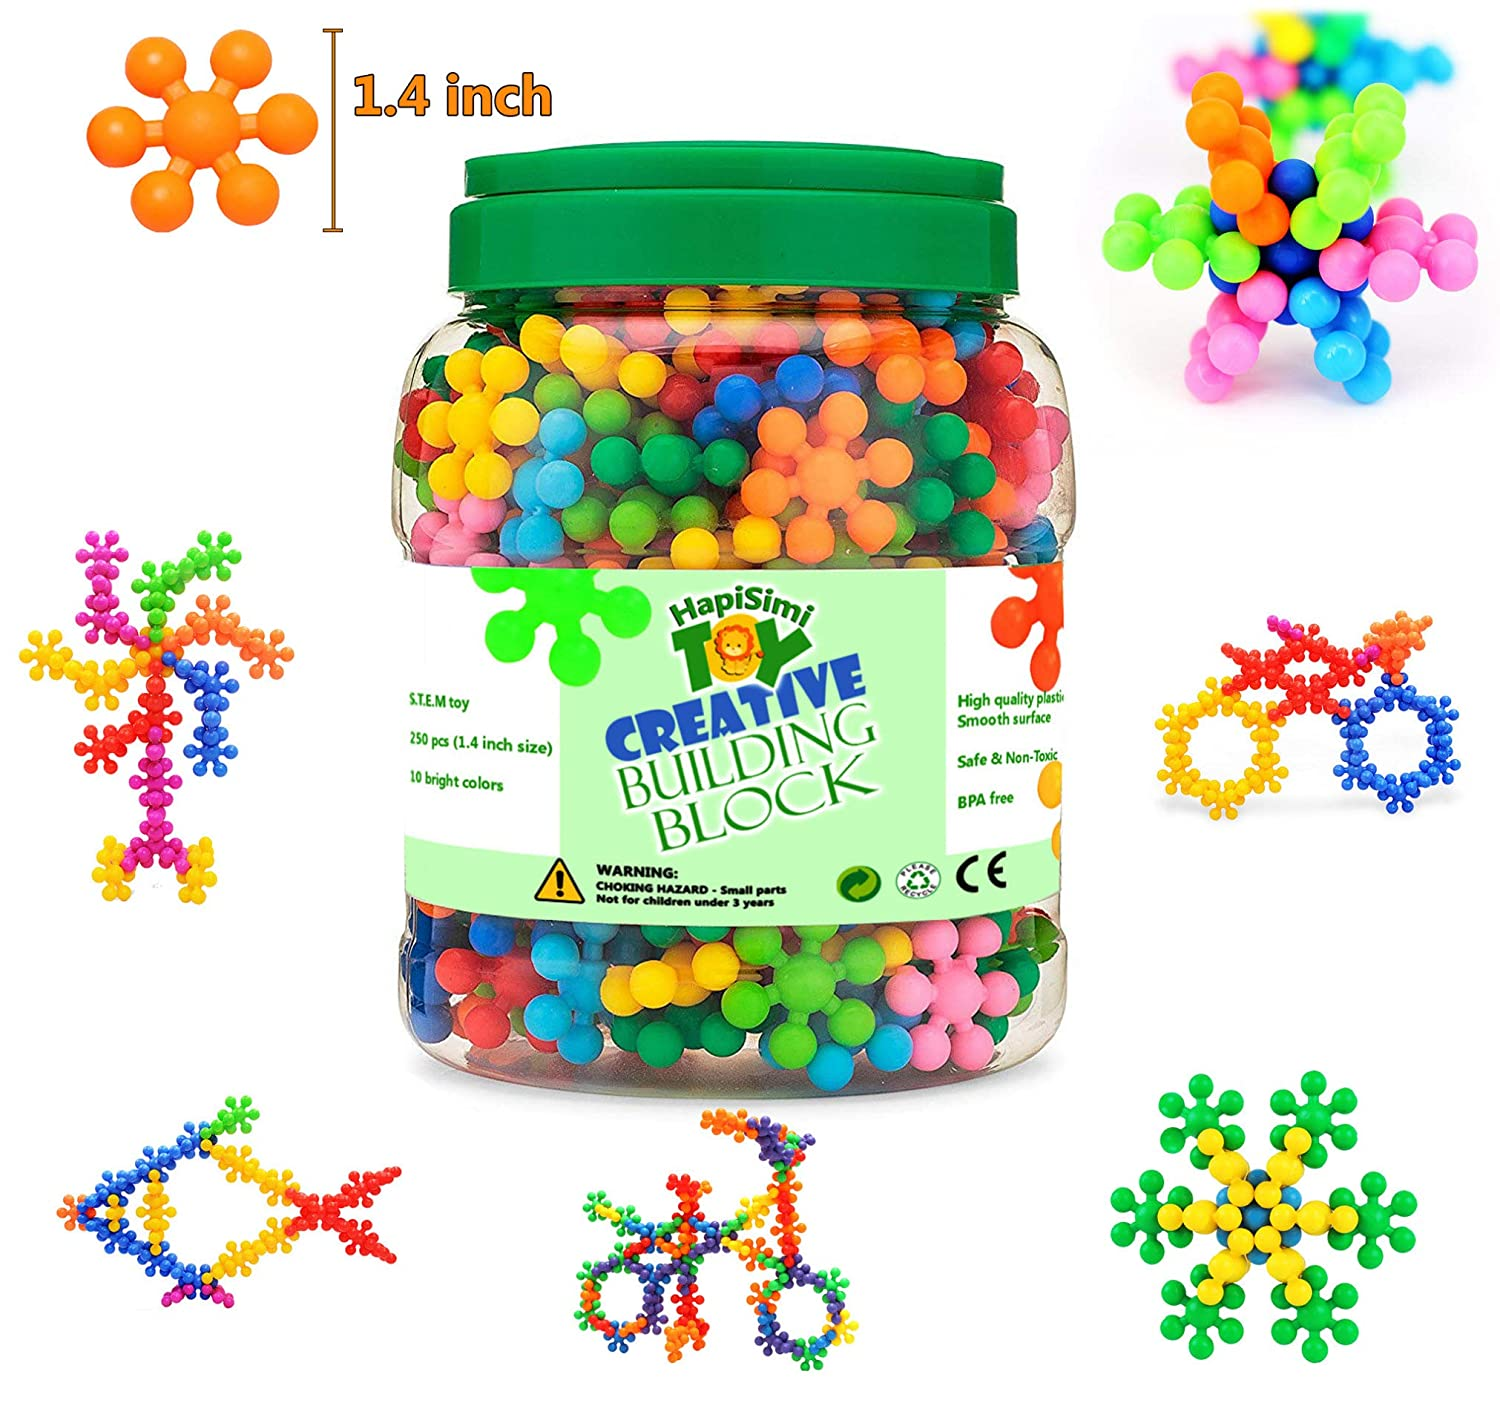 HapiSimi Snowflake Building Blocks Kids STEM Educational Toys - 250 Piece Mega Set of Plastic Interlocking Discs for Preschool, Toddler and School Boys and Girls - Creative & Development Toy   B07CGYWB1M